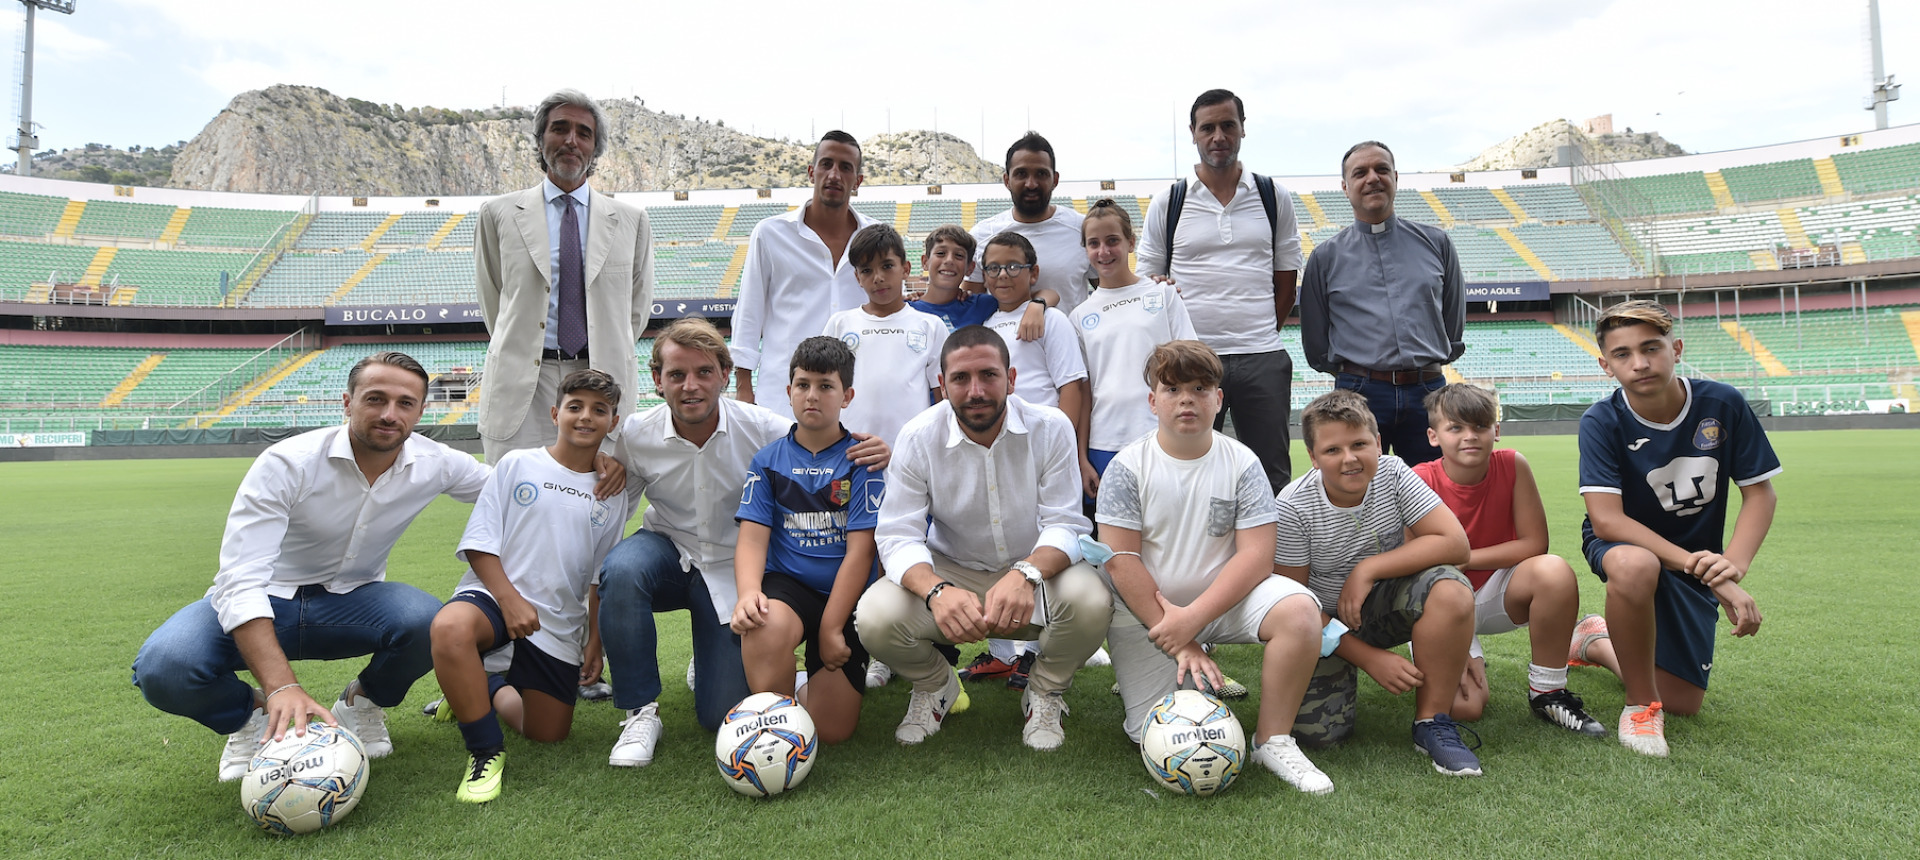 """AQUILE DI QUARTIERE"" (NEIGHBORHOOD EAGLES): PALERMO PLAYERS PAY SOCCER SCHOOL FOR 50 DISADVANTAGED YOUNGSTERS"